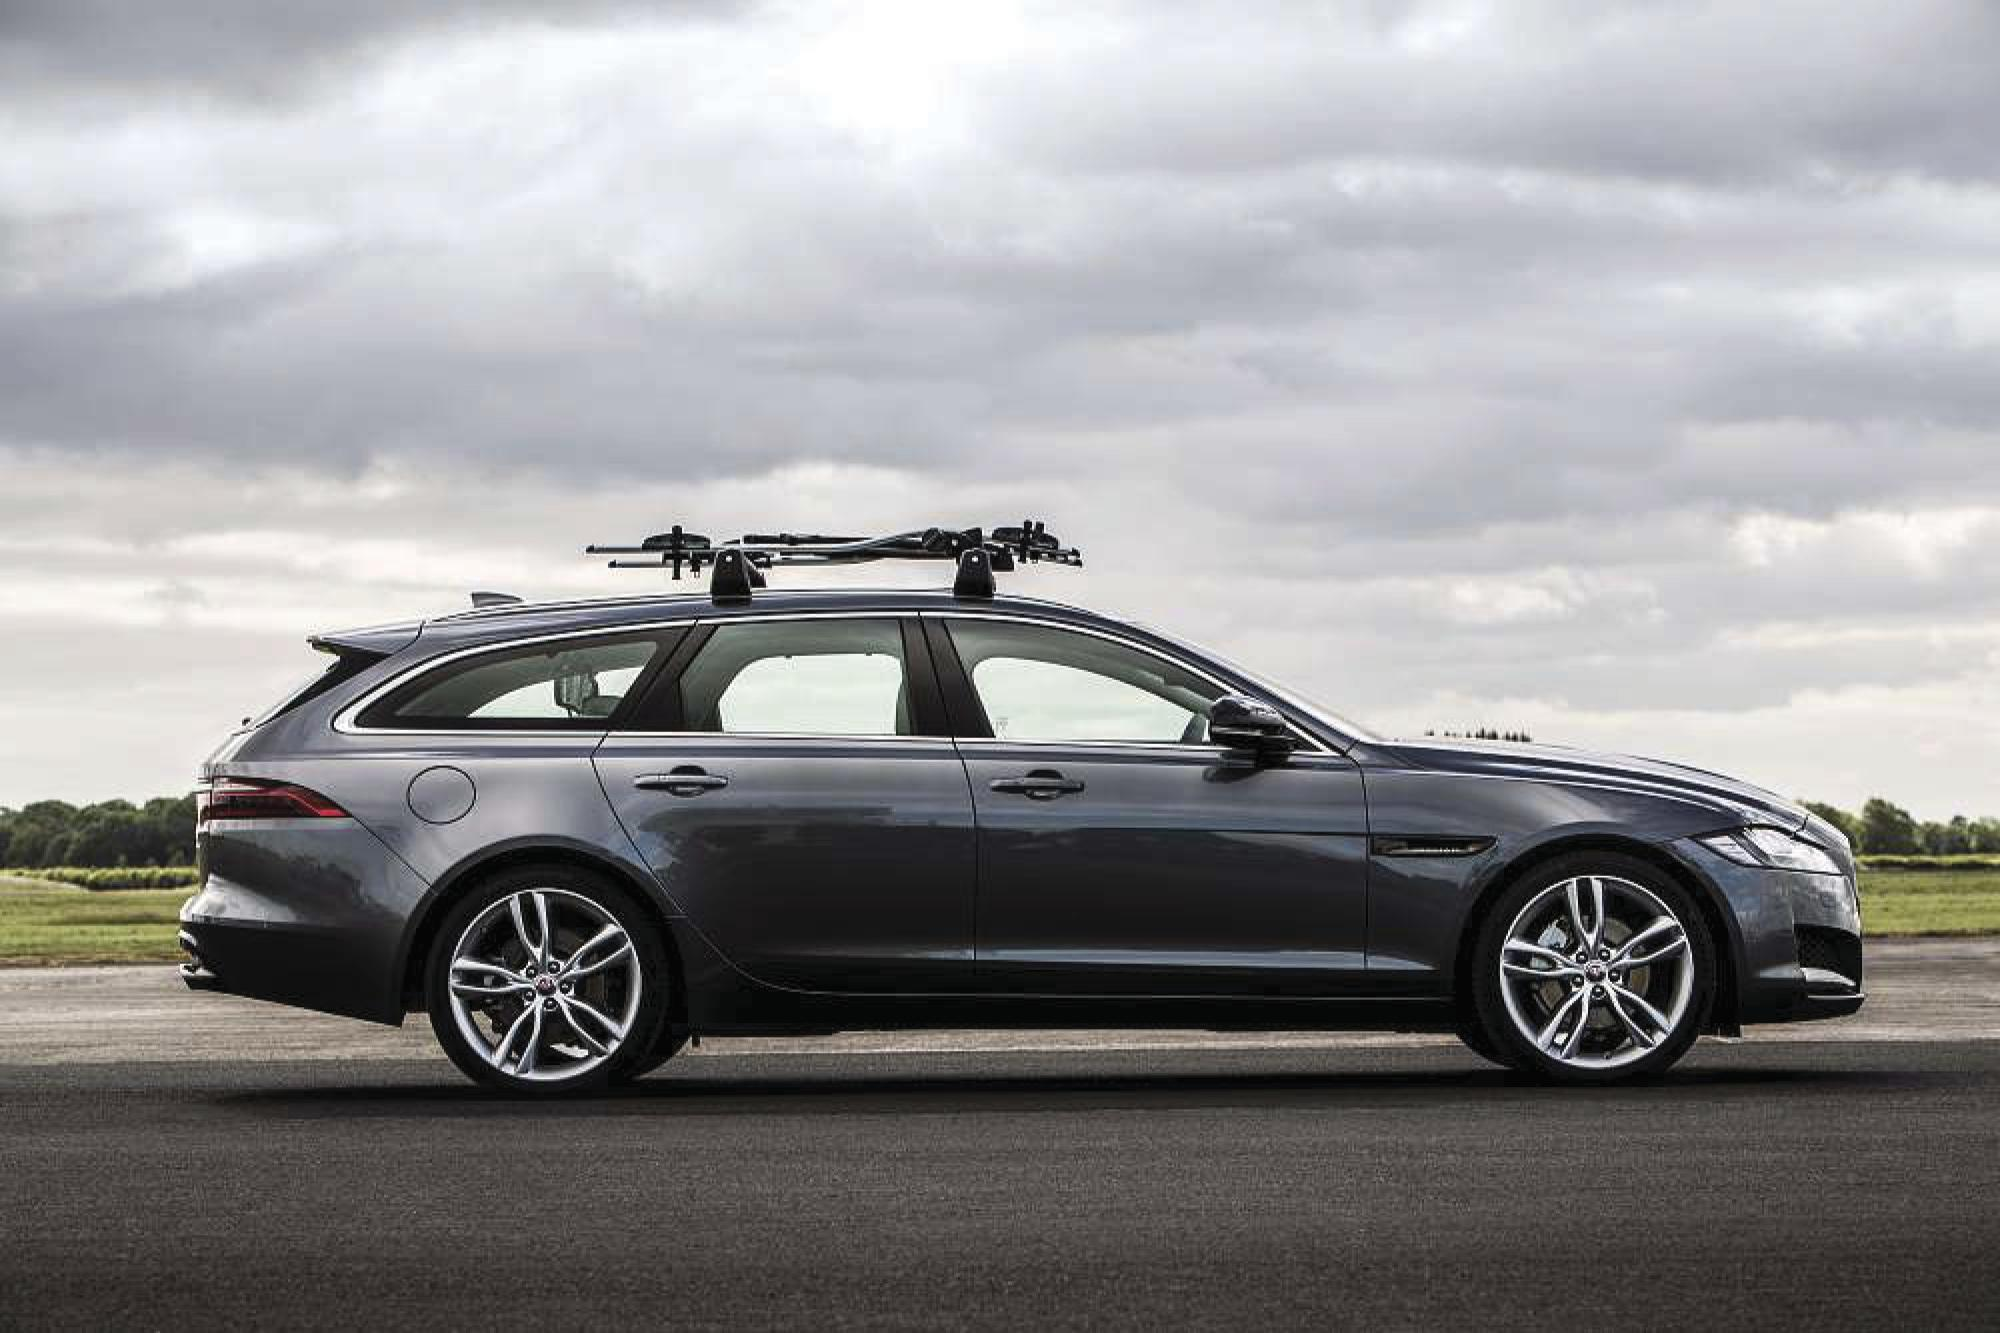 Jaguar brings its cool XF Sportbrake station wagon to U.S.